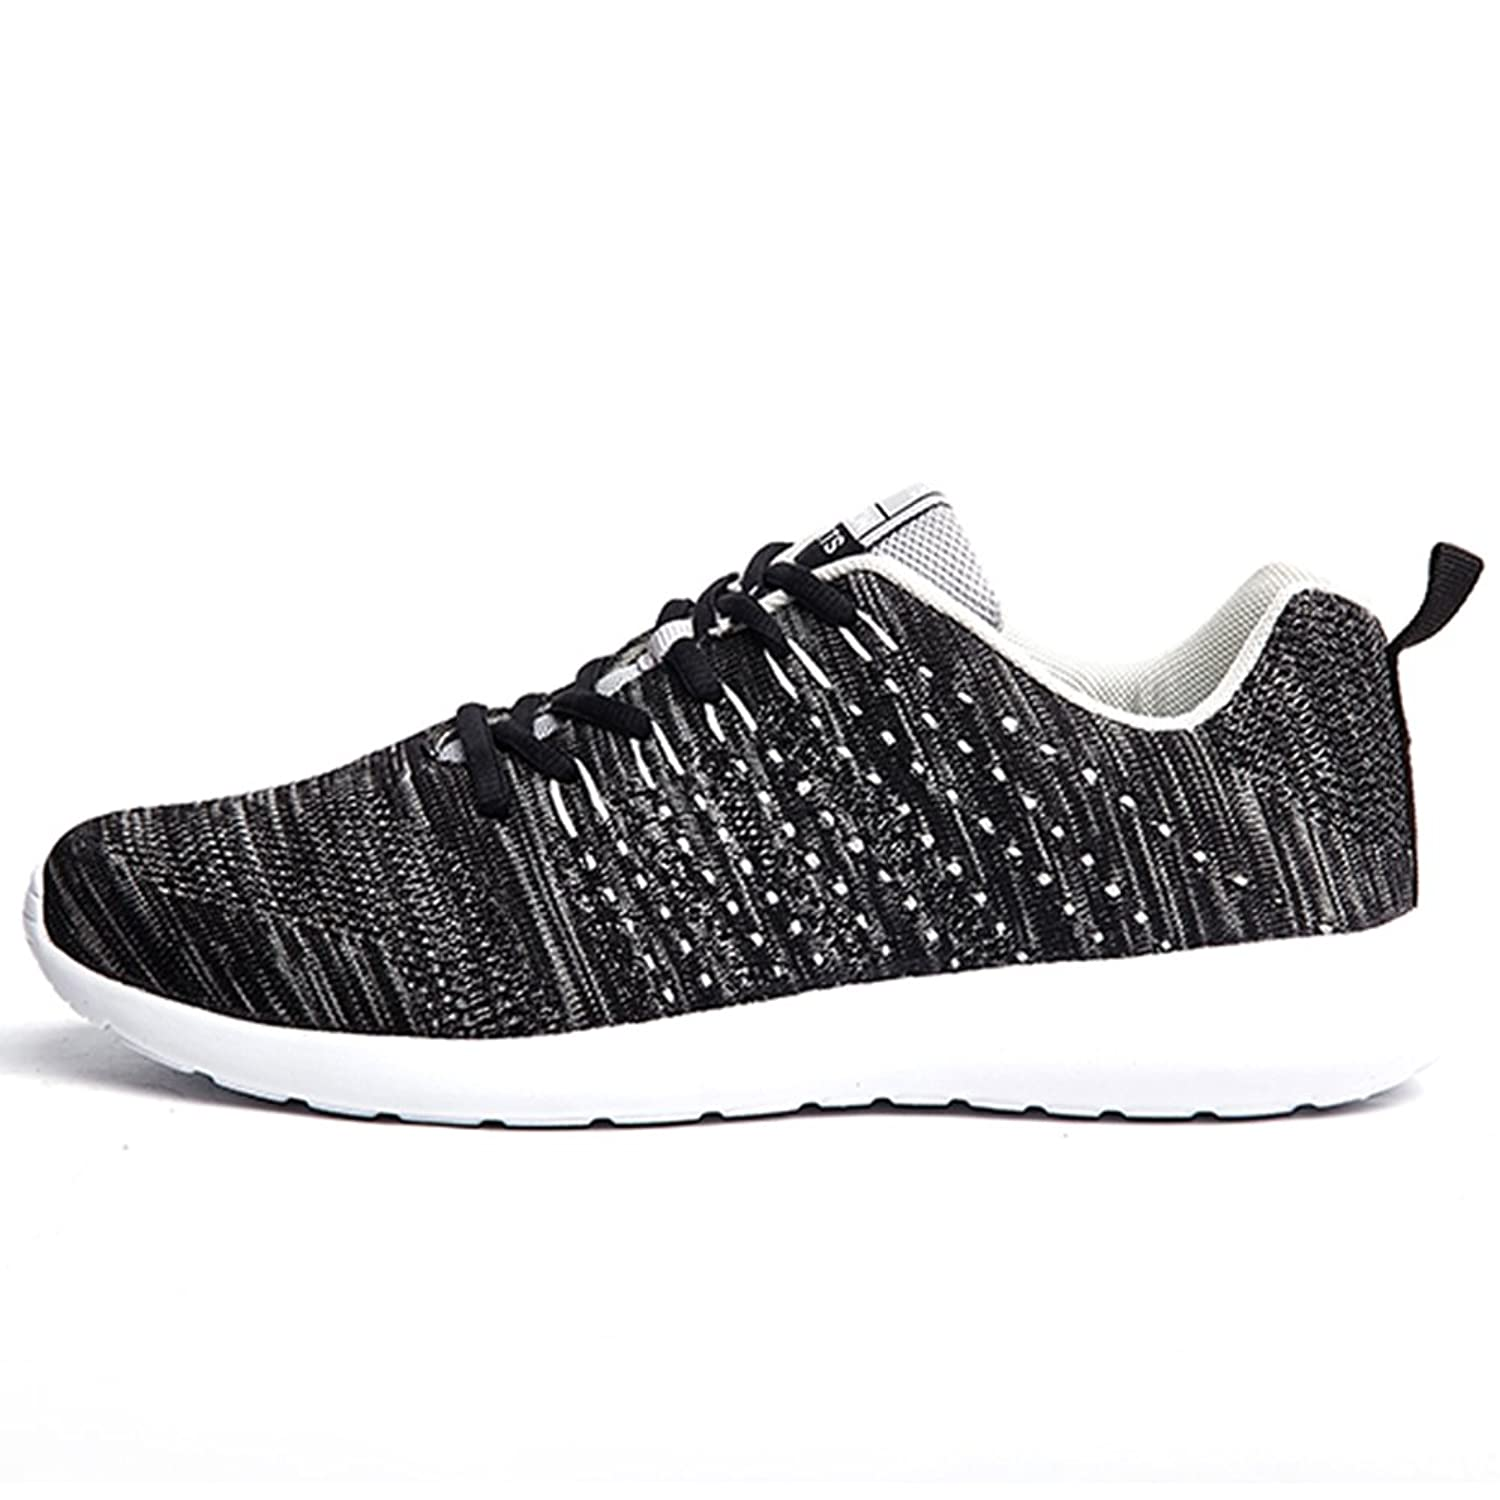 Young & Ming Sport Shoes, Mens Sneakers Trainers Breathable Mesh Gym  Walking Trainers Fitness Lightweight Sports Running Shoes: Amazon.co.uk:  Shoes & Bags